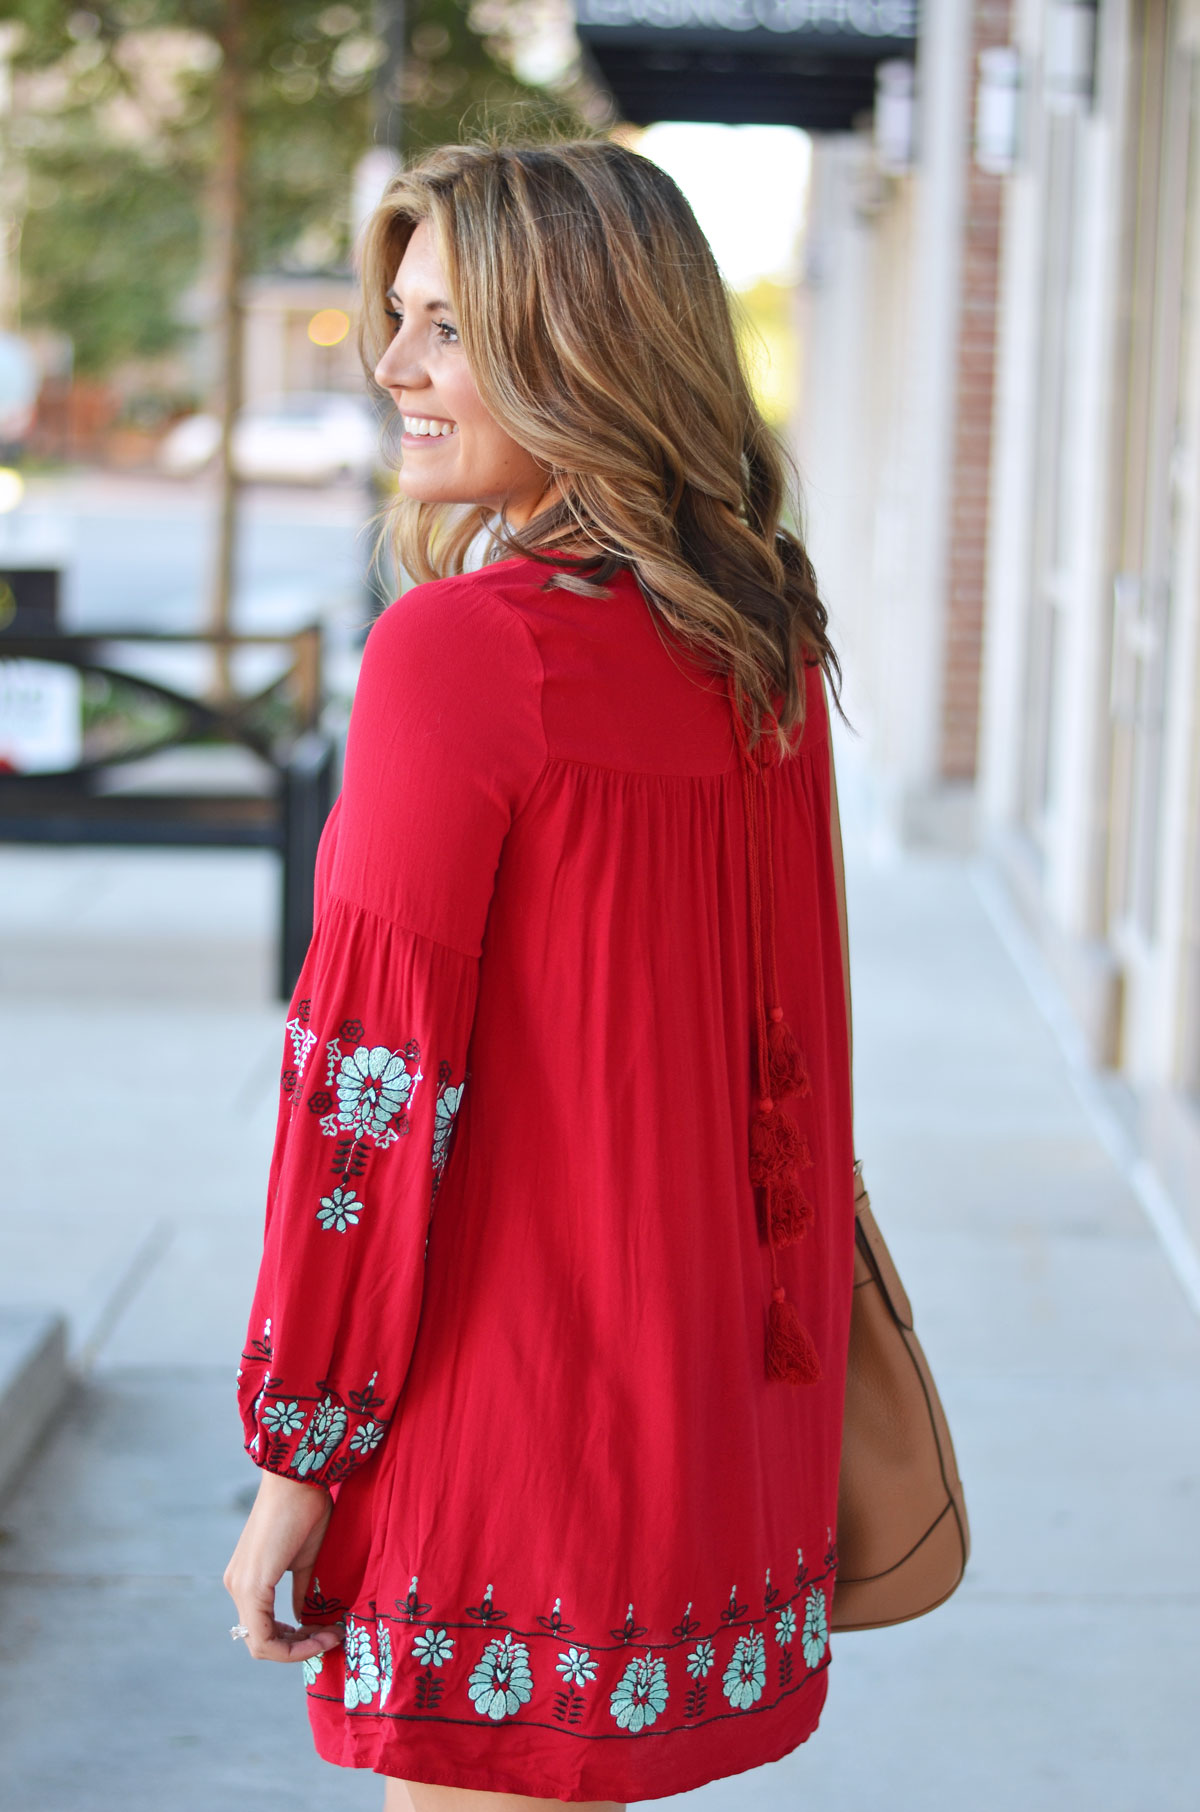 red embroidered mini dress with tassel tie detail | www.fizzandfrosting.com